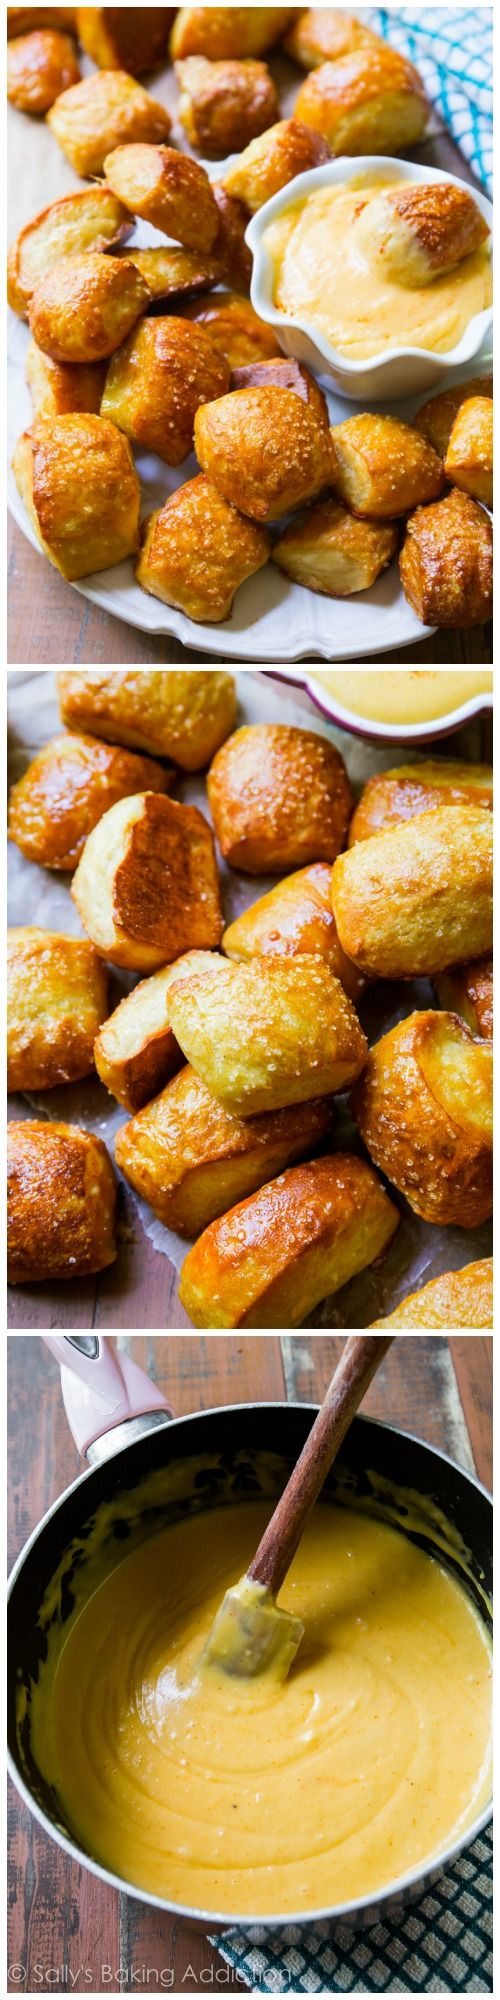 The BEST Soft Pretzel Bites - and they are so easy to make. Serve with ...